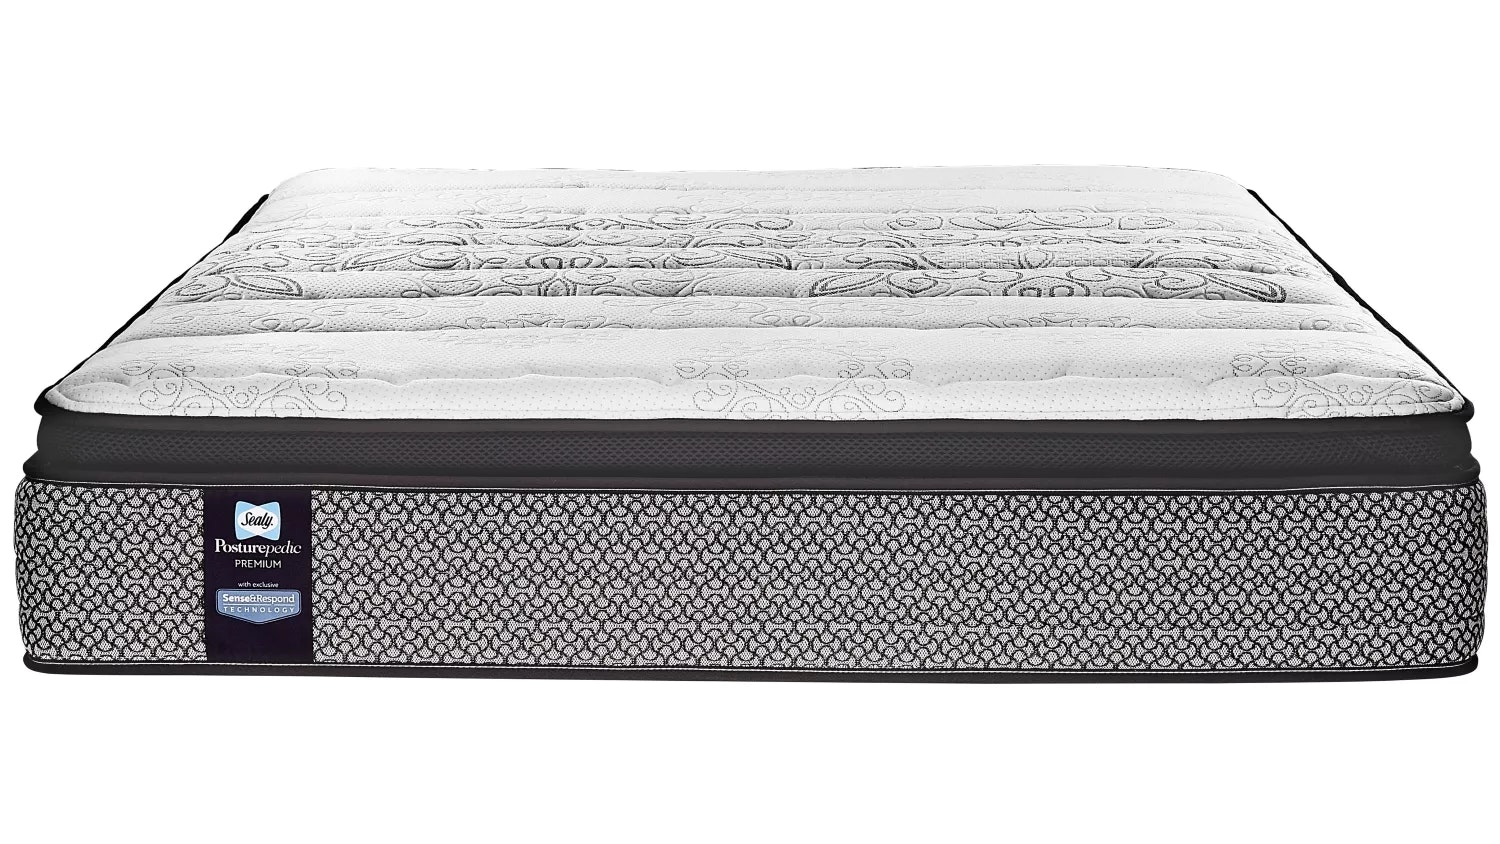 Sealy Posturepedic Premium Amada Flex Medium Adjustable Mattress